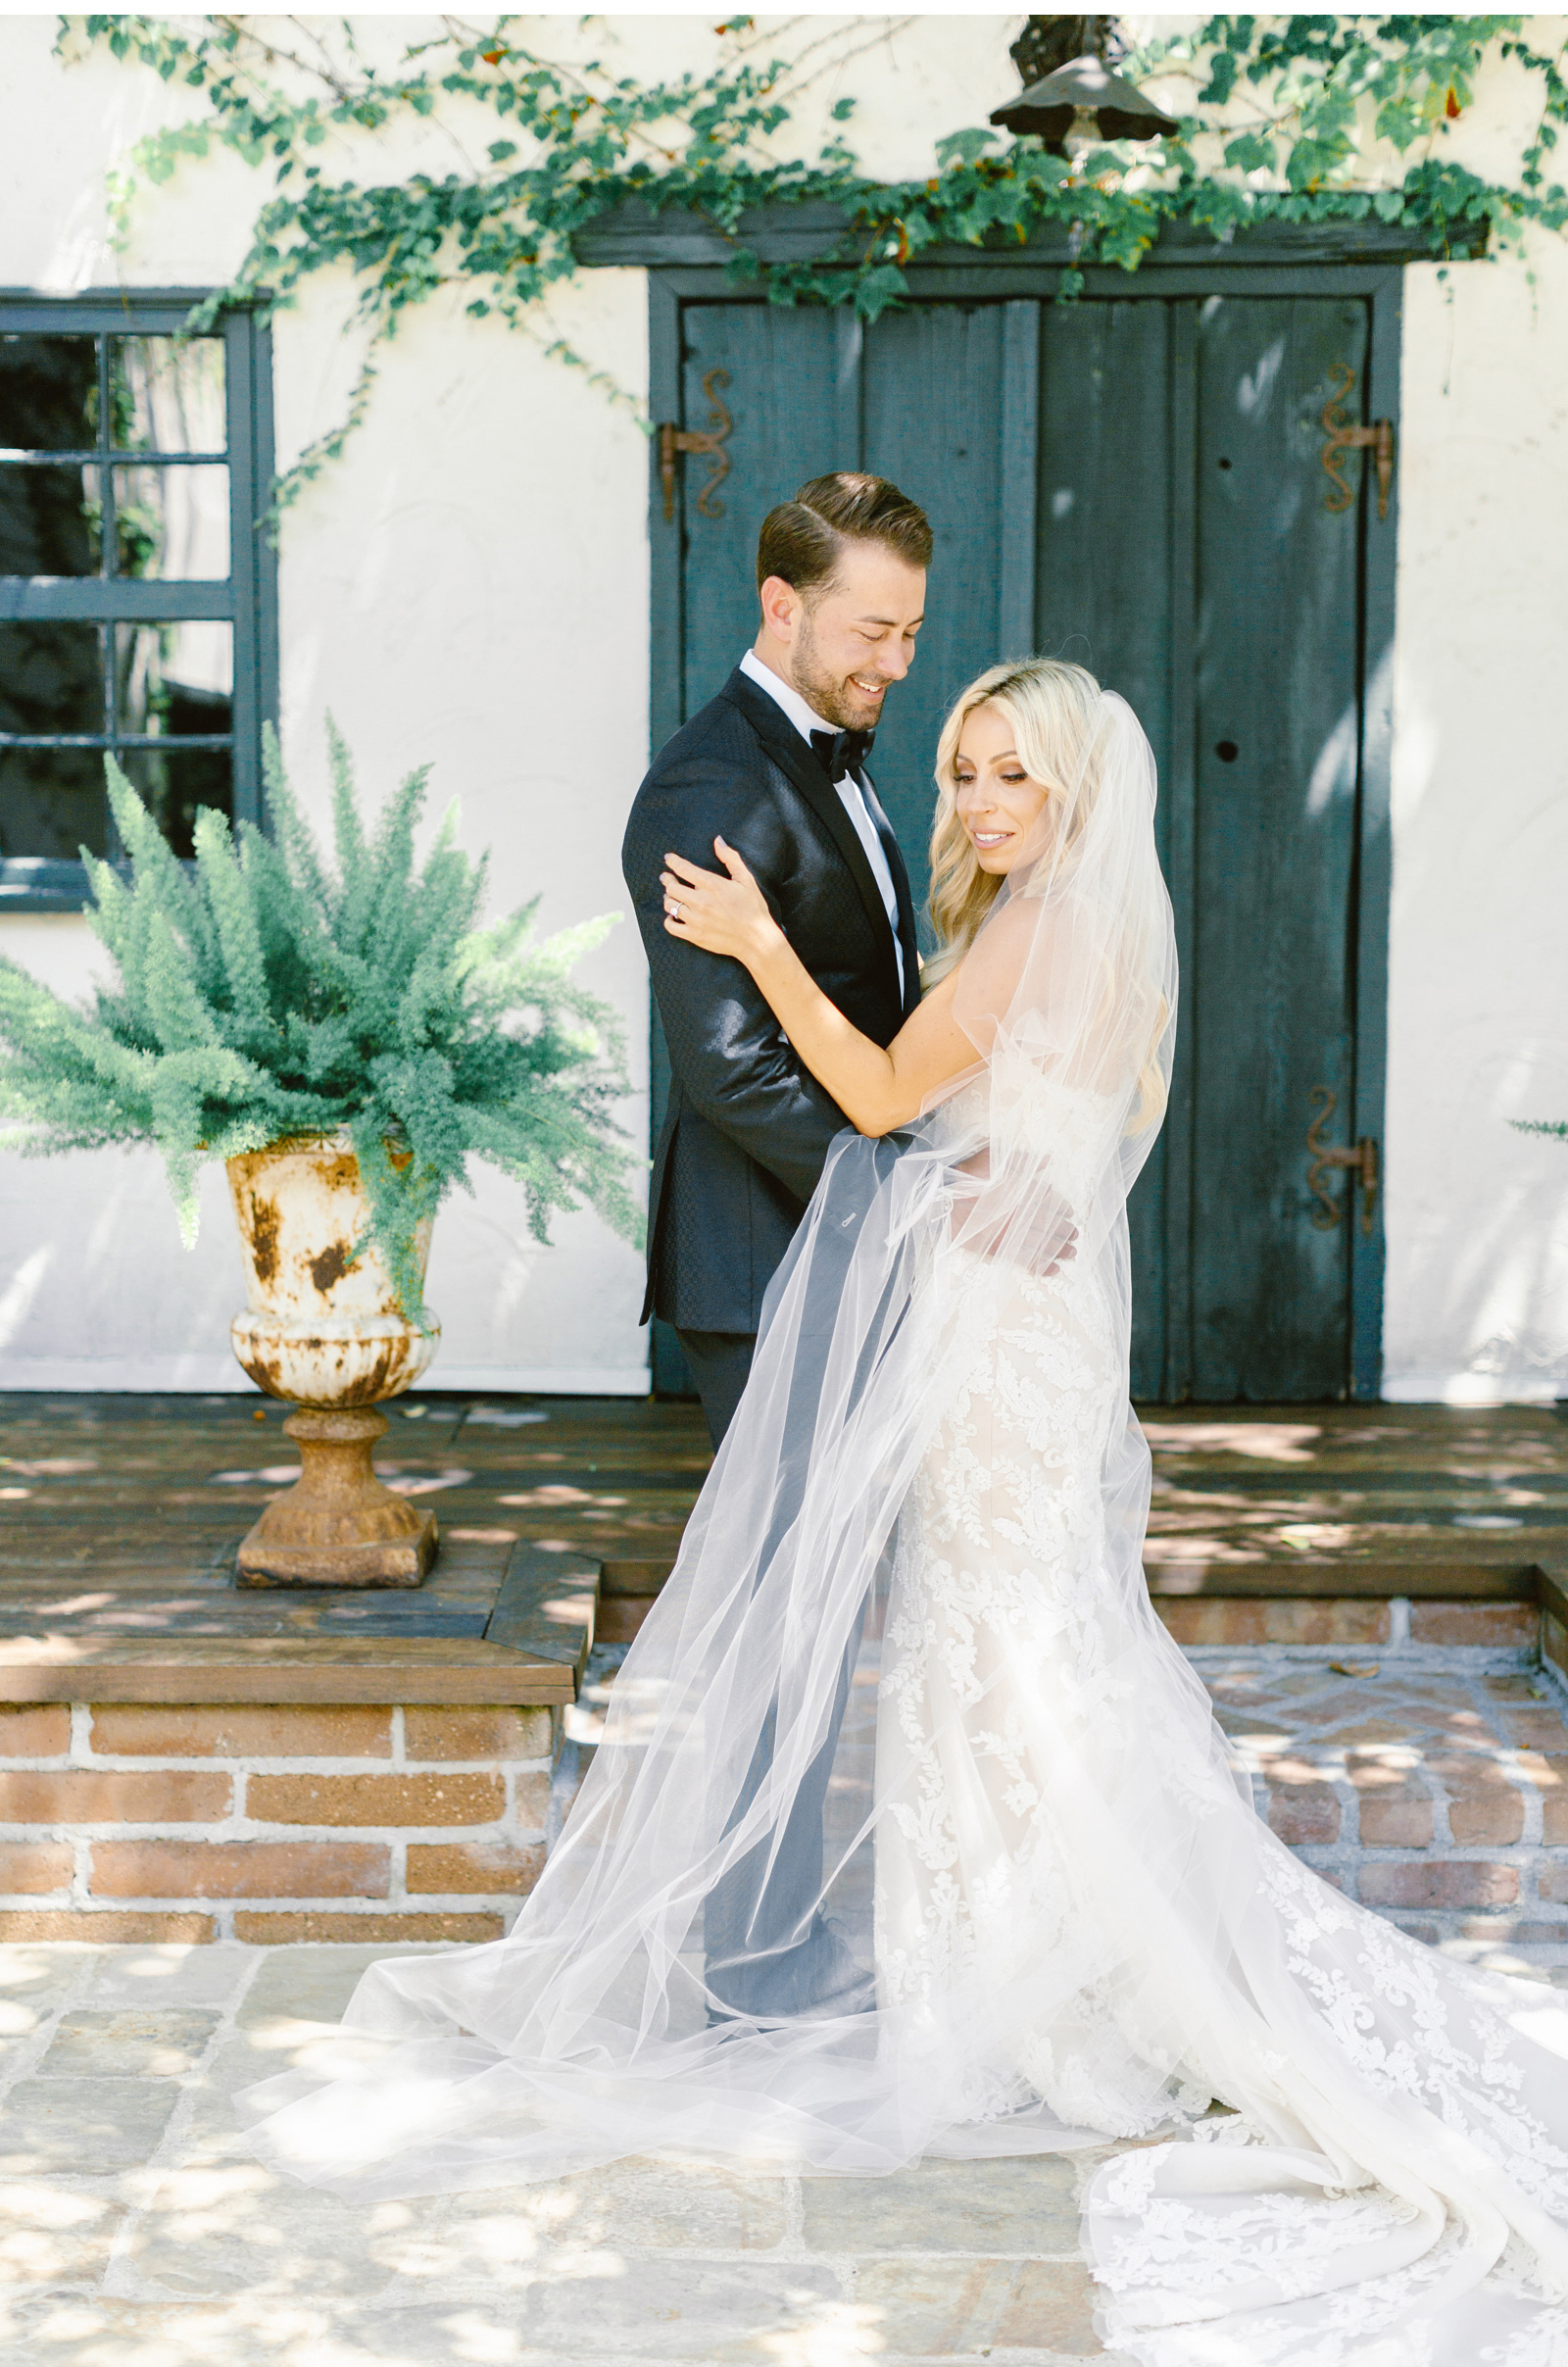 San-Juan-Capistrano-Wedding-Photographer-Malibu-Weddings-Malibu-Wedding-Venues-Natalie-Schutt-Photographer_10.jpg